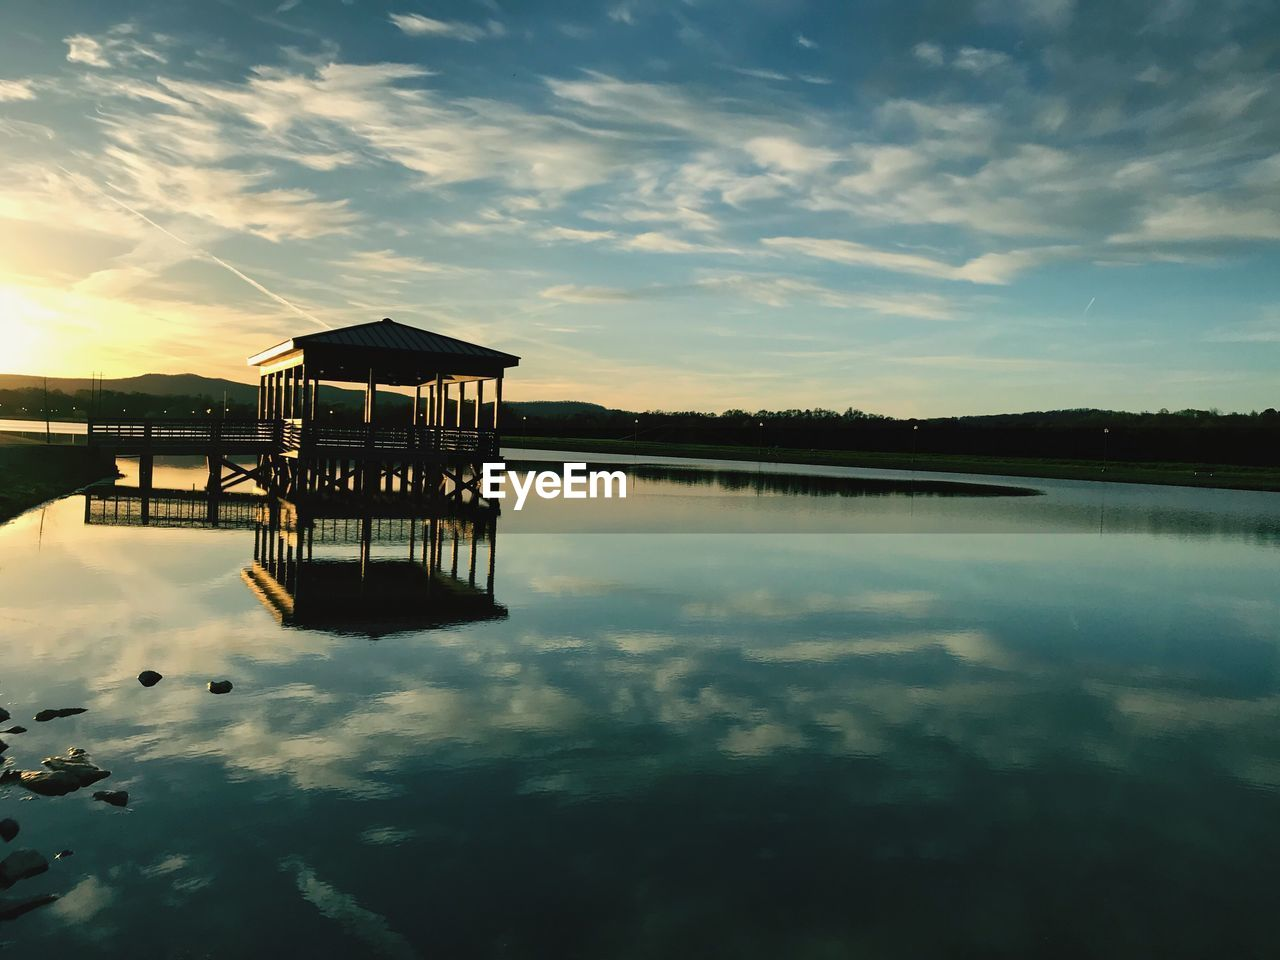 water, sky, reflection, cloud - sky, tranquility, waterfront, lake, tranquil scene, scenics - nature, beauty in nature, architecture, built structure, sunset, nature, no people, standing water, stilt house, silhouette, outdoors